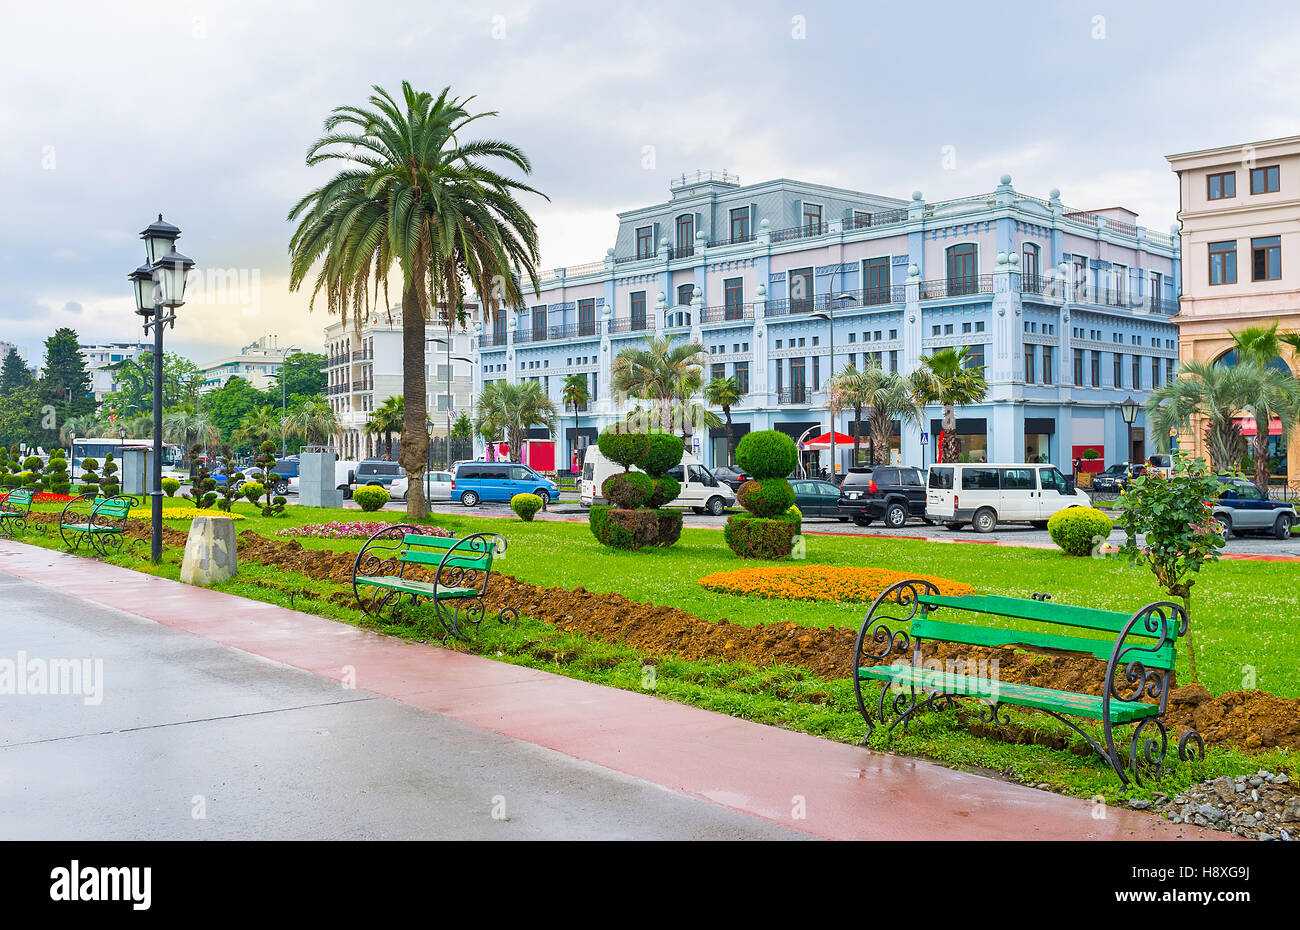 The scenic park located adjacent to the promenade of the Sea Port, Batumi, Georgia. - Stock Image